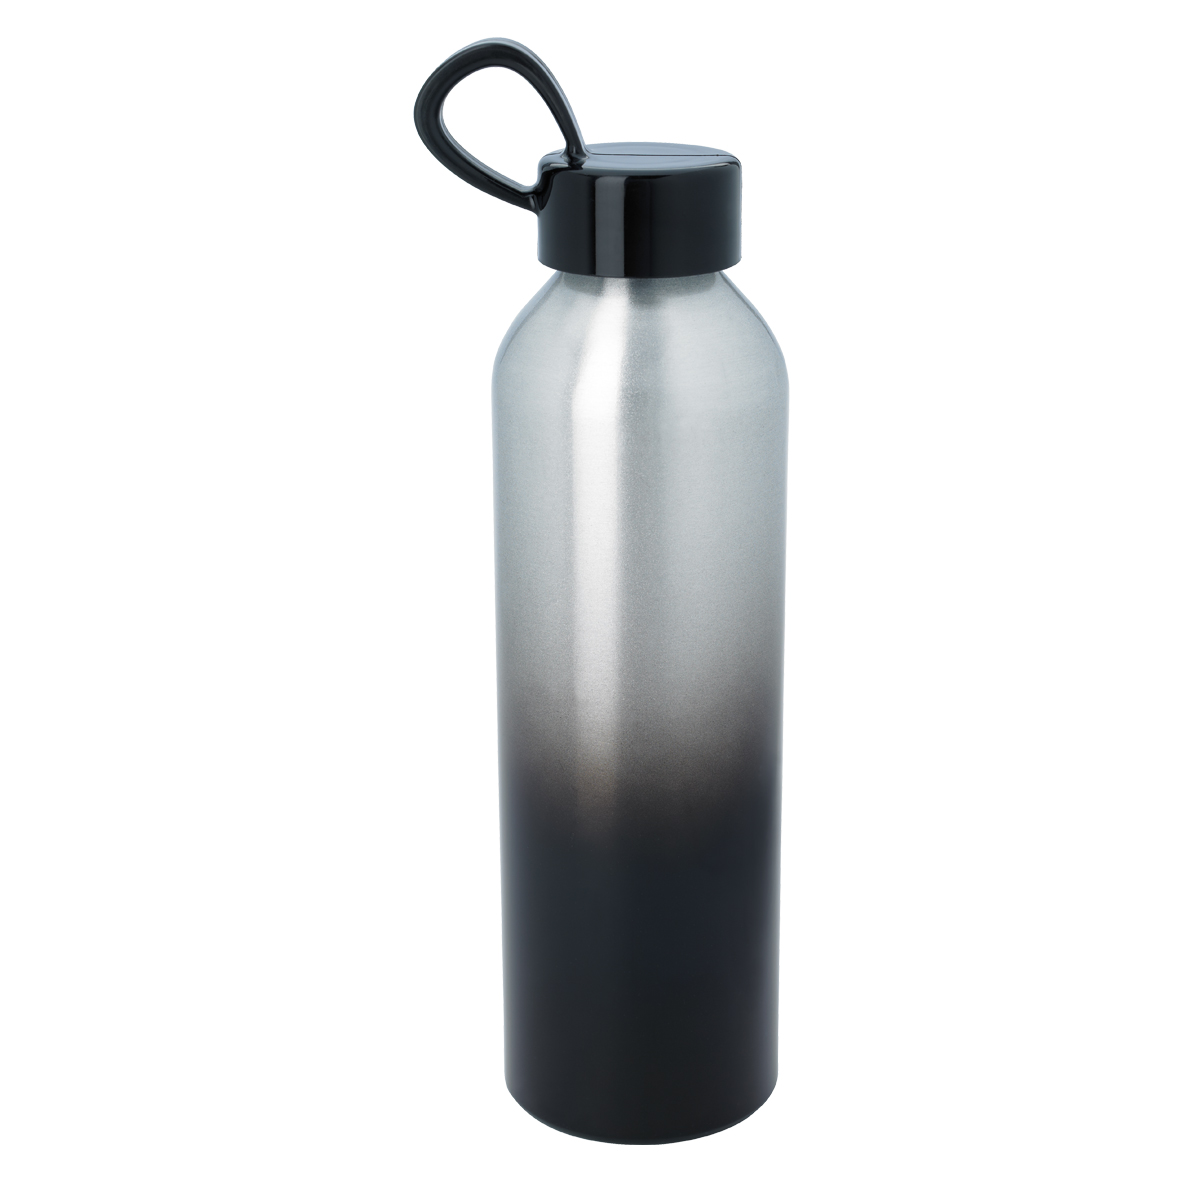 #CM 5721 - 21 Oz. Aluminum Chroma Bottle